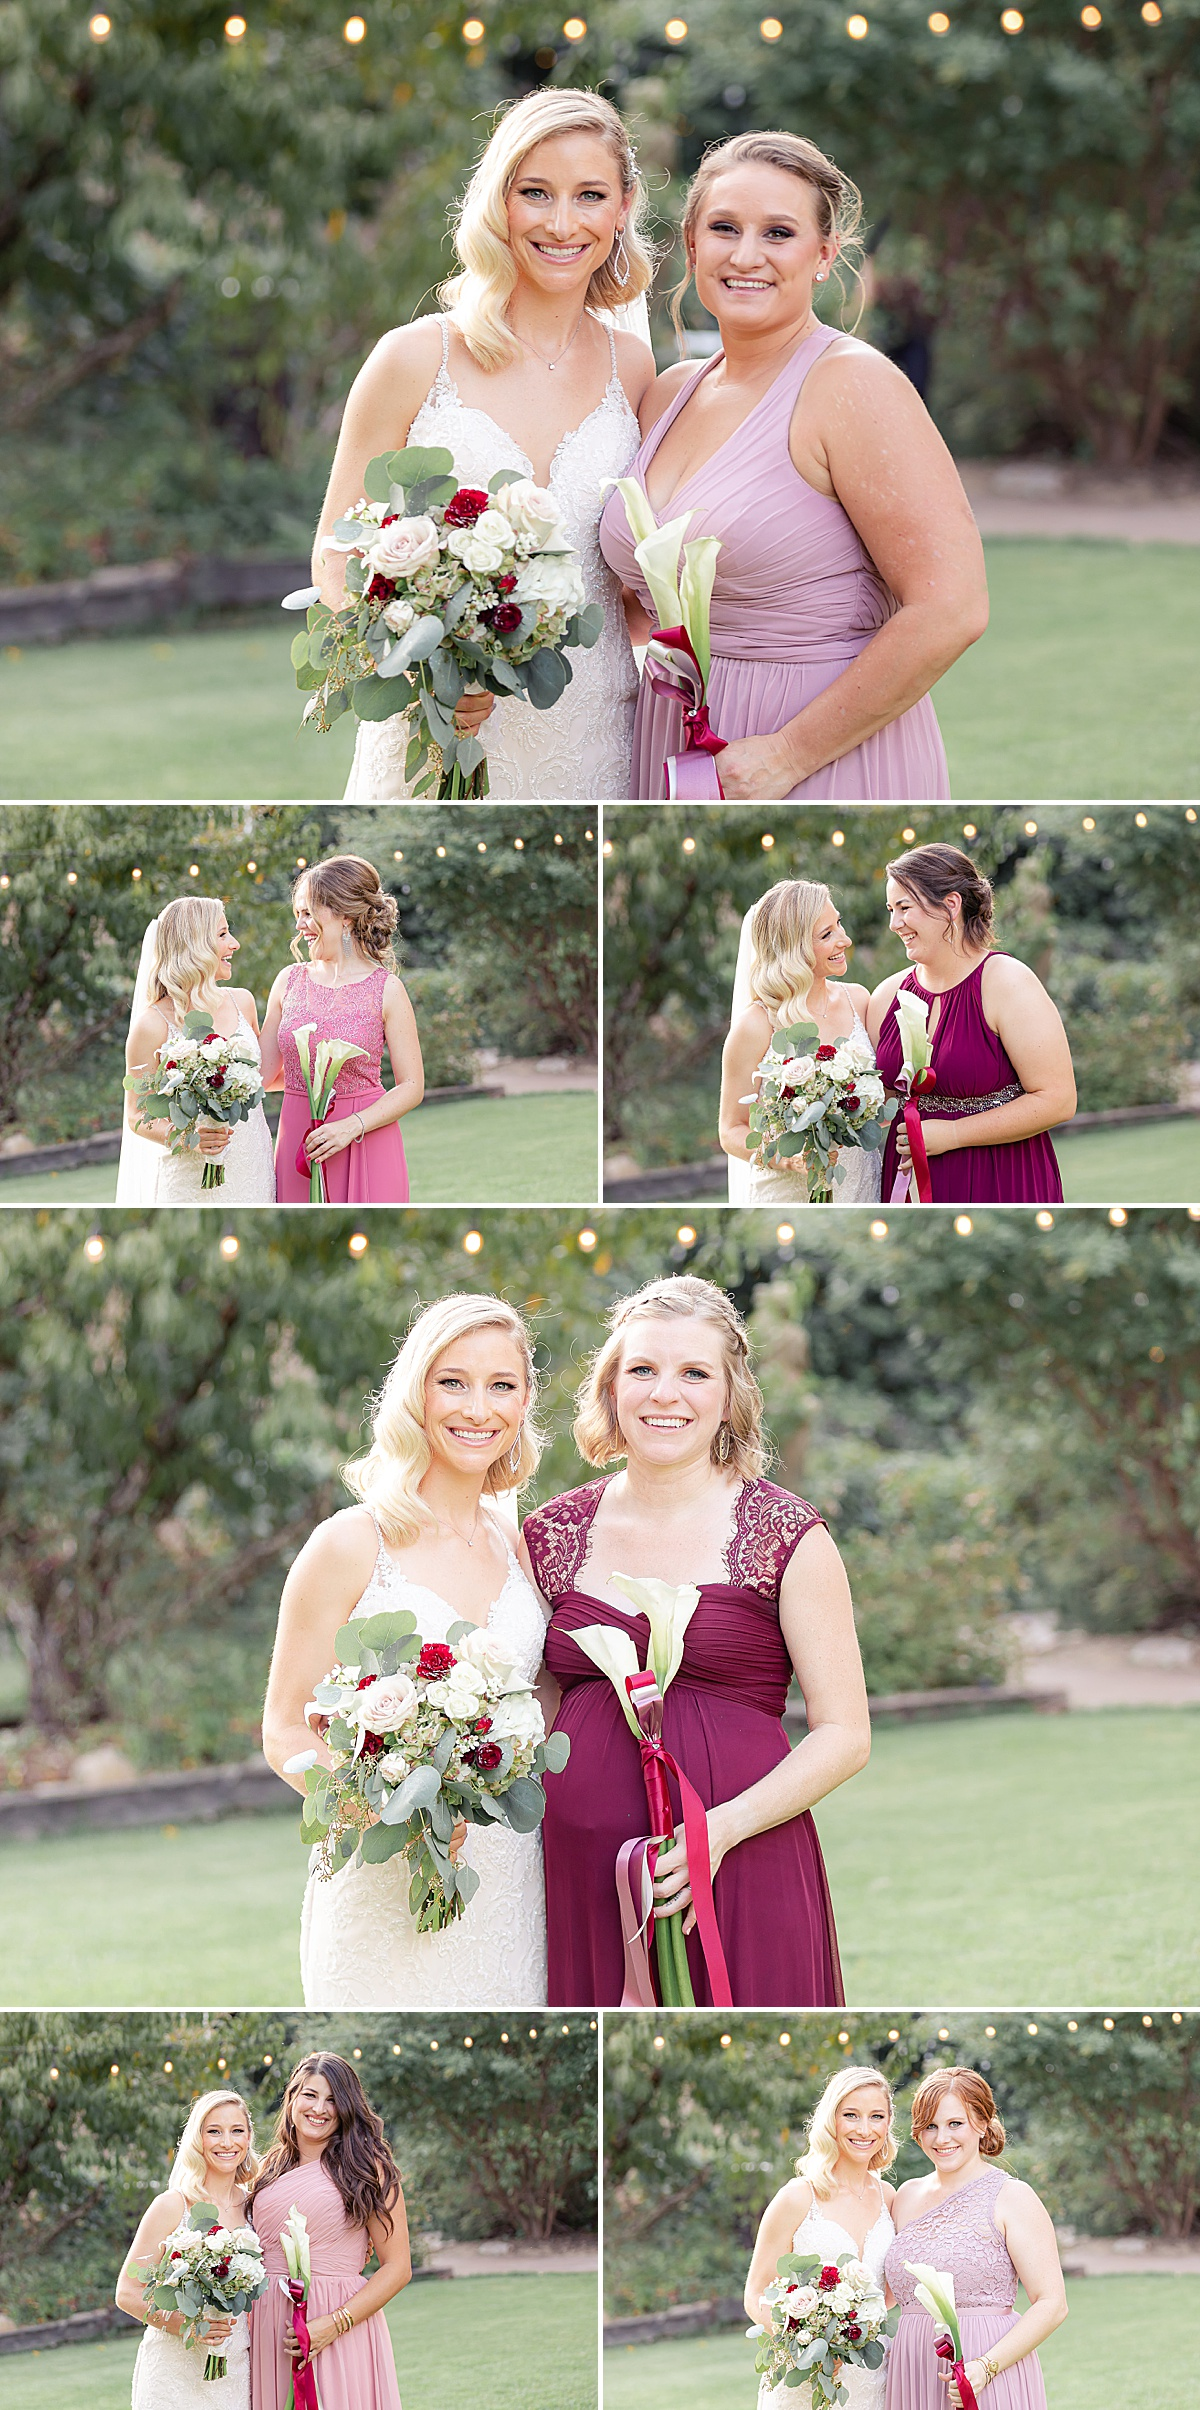 Navy-Burgundy-Blush-Texas-Wedding-Oak-Valley-Vineyards-New-Braunfels-Carly-Barton-Photography_0021.jpg